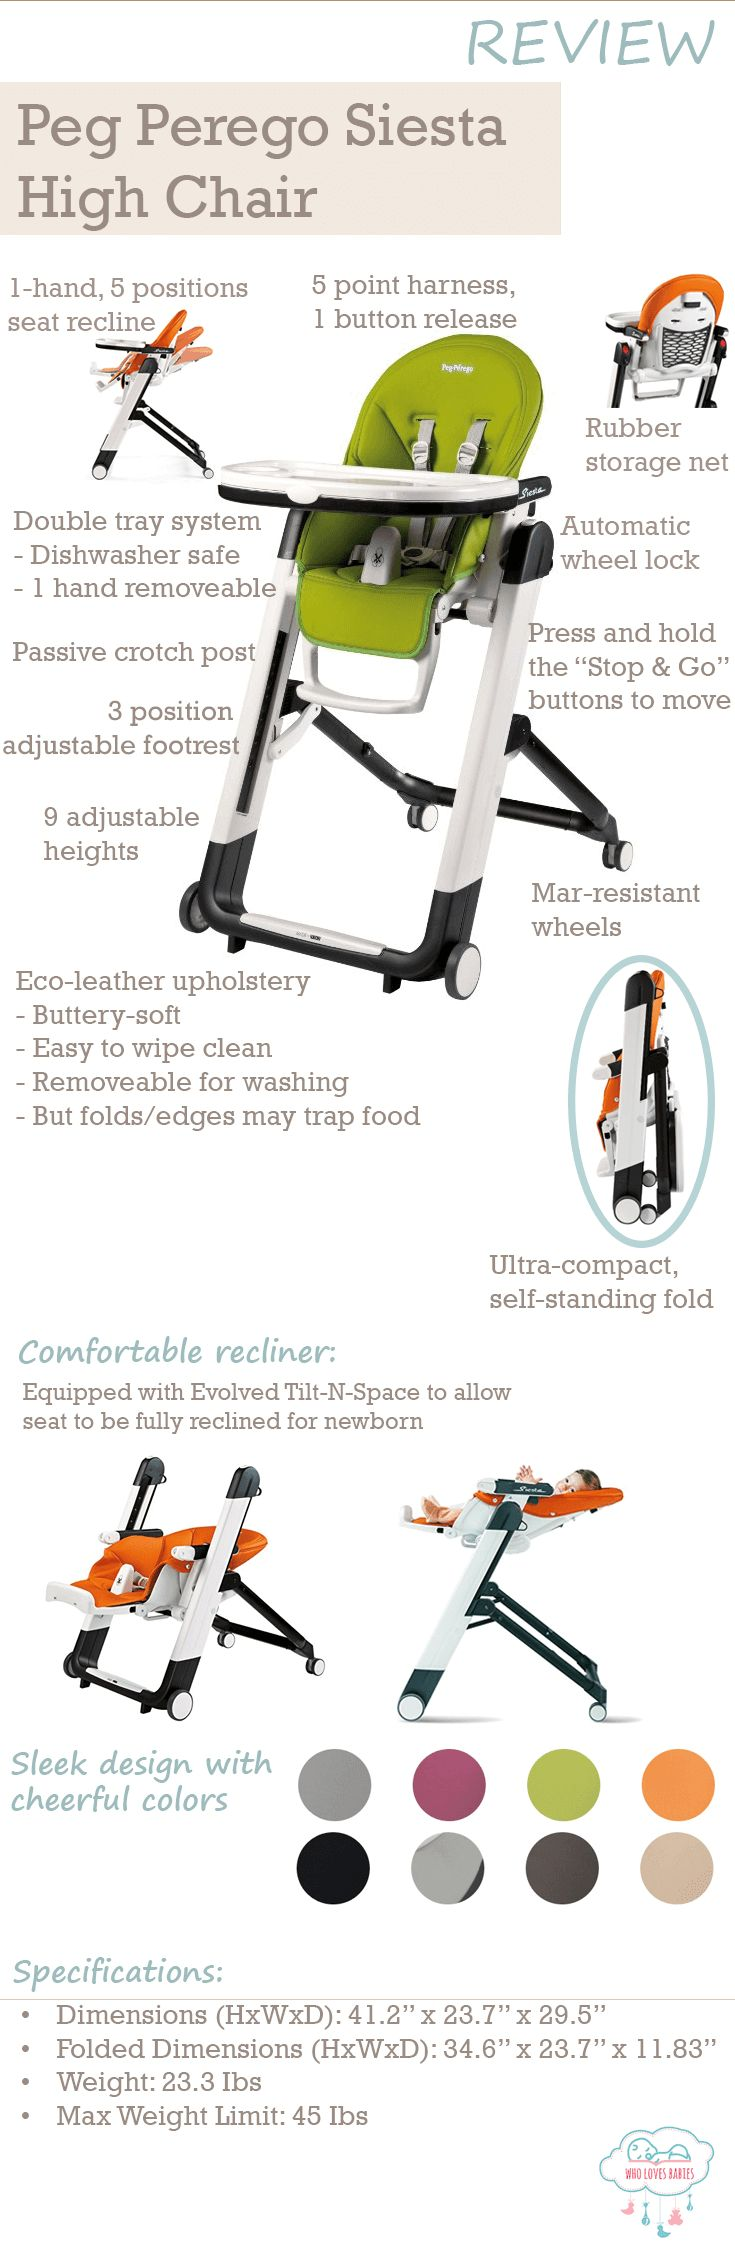 Space saver high chair boy - Peg Perego Siesta High Chair Review Are You Looking For A Baby High Chair